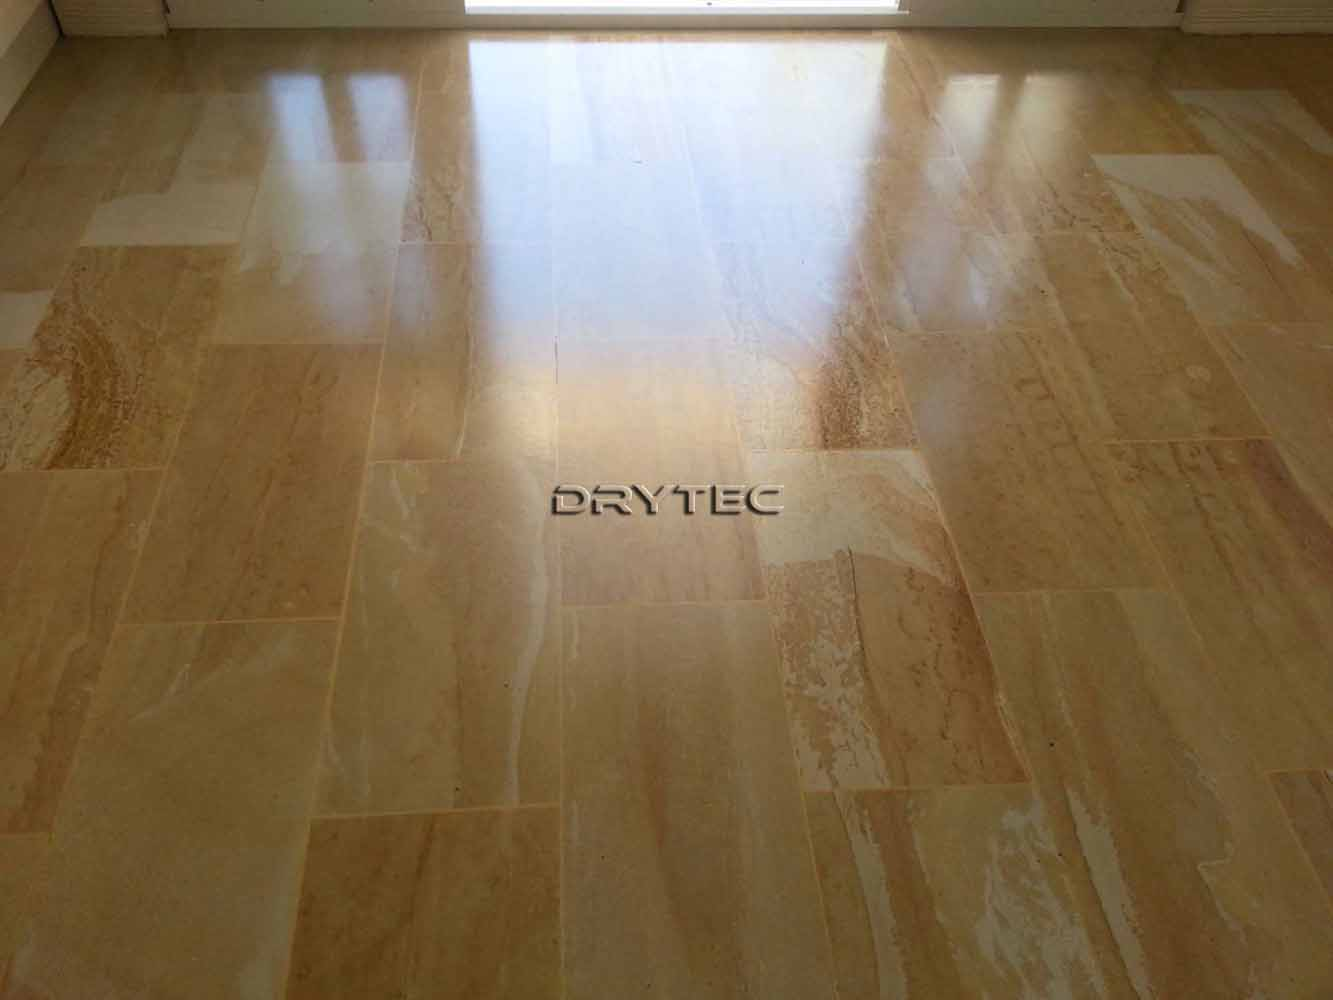 Sandstone Floor Tiles Stripping- Cleaning and Sealing Services in Perth WA